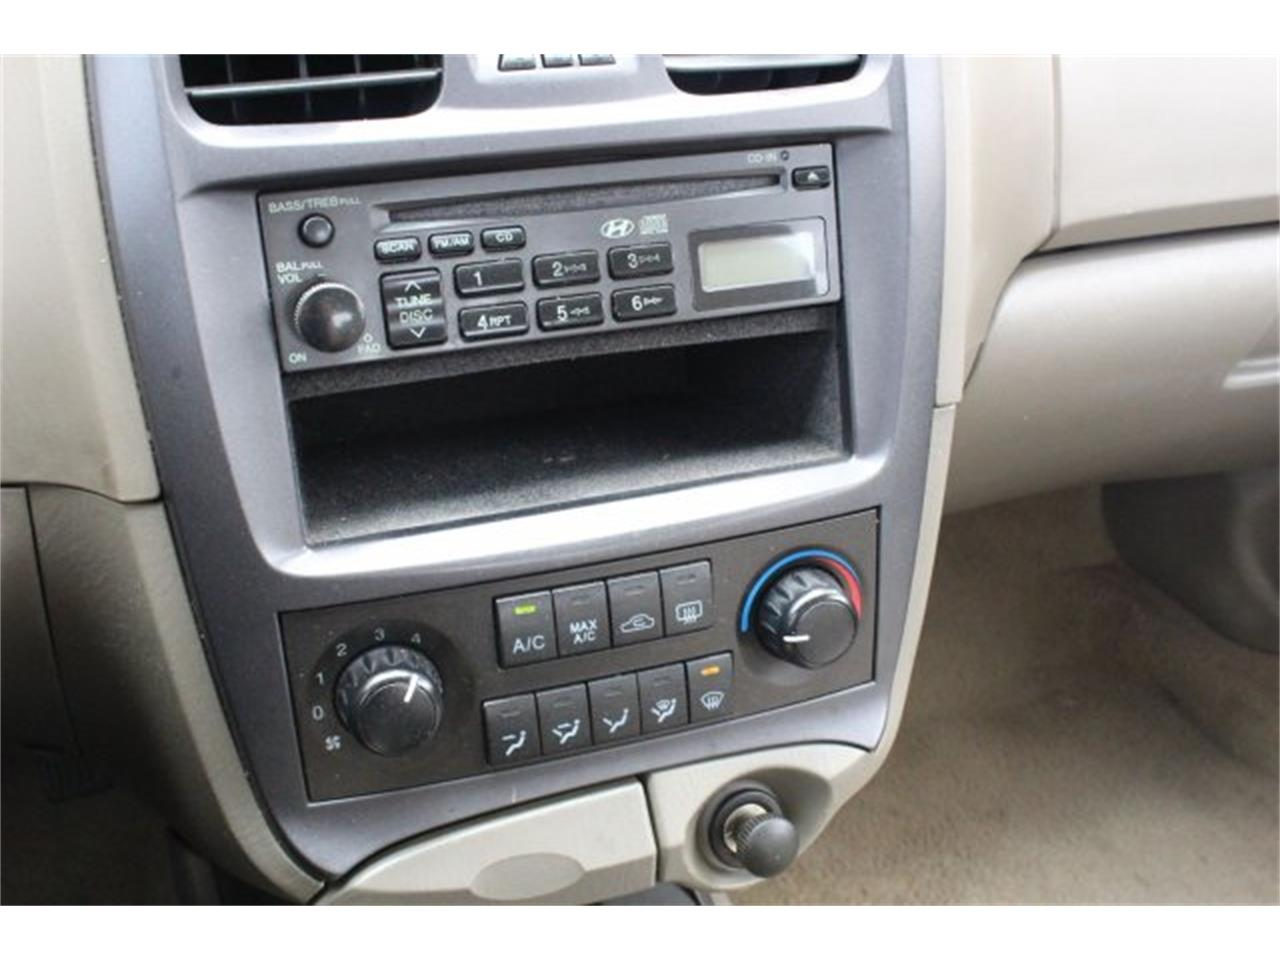 Large Picture of '05 Hyundai Sonata located in Washington - $4,995.00 Offered by Carson Cars - JJGU